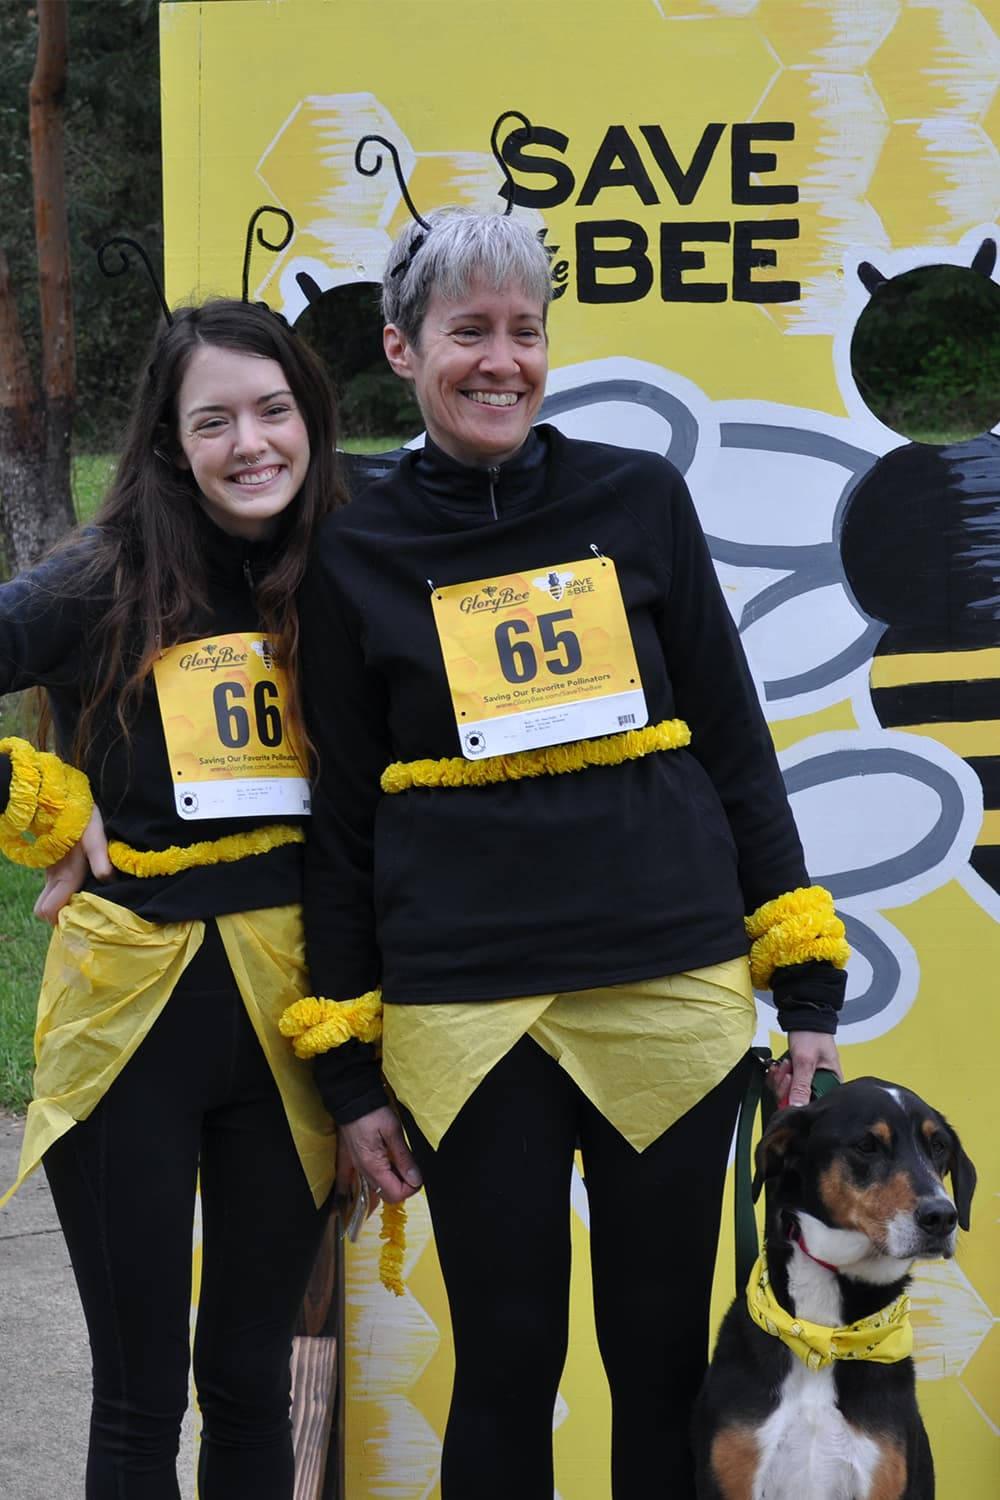 Two women running the race the bee race